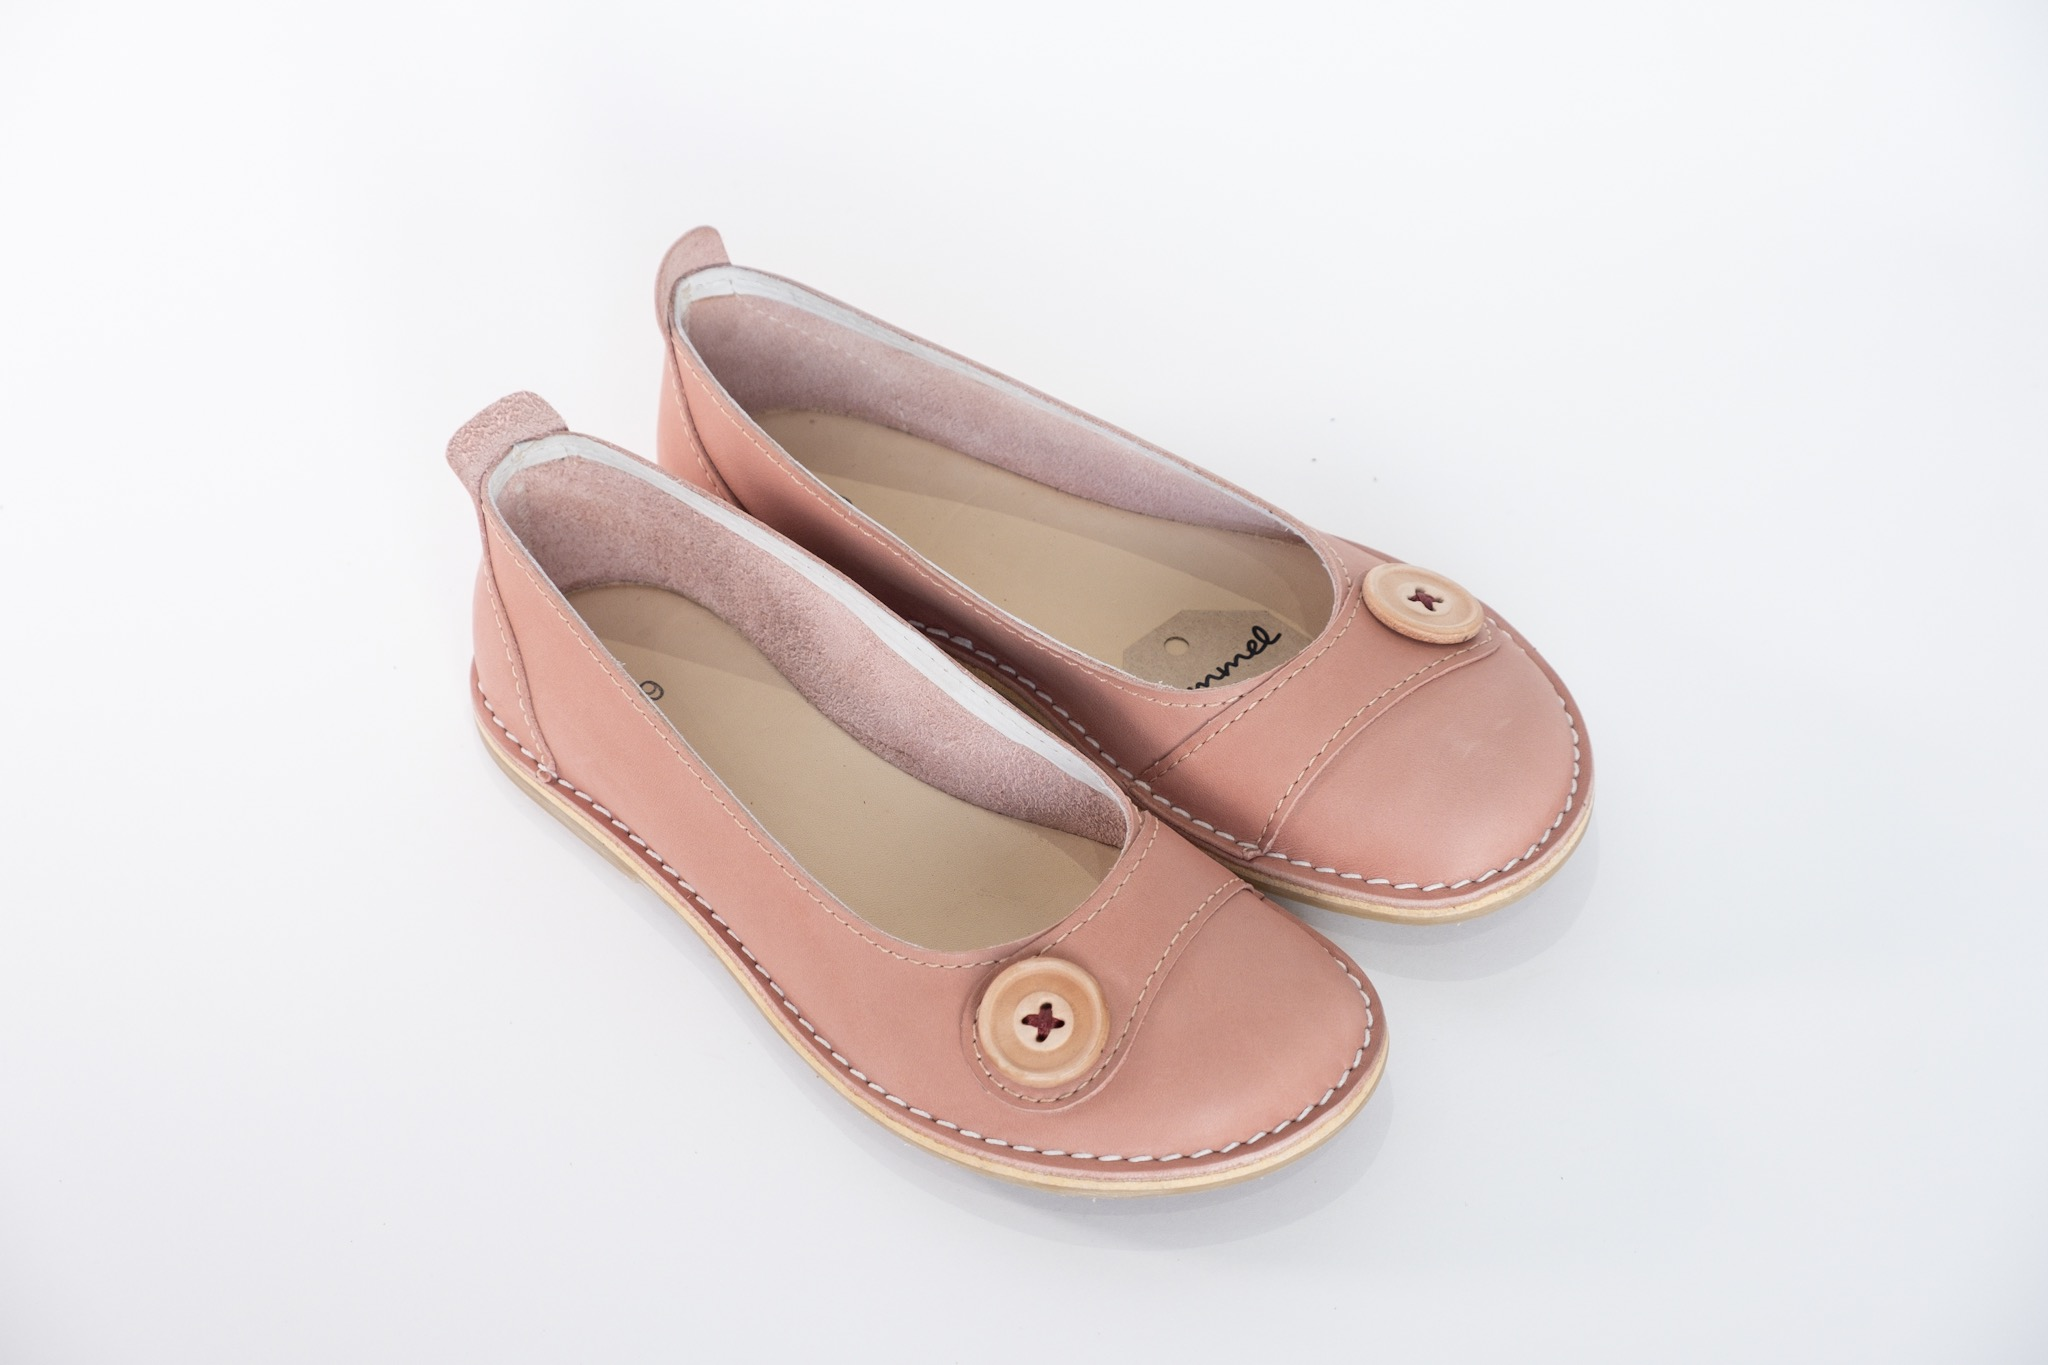 We are proud to launch our Zuri ballerinas, our classic, all–leather shoe that offers style, character and flair.  They can be worn with anything! Dress it up for an elegant look, or dress it down for casual wear, these ballerinas bring a unique and relaxed charm.